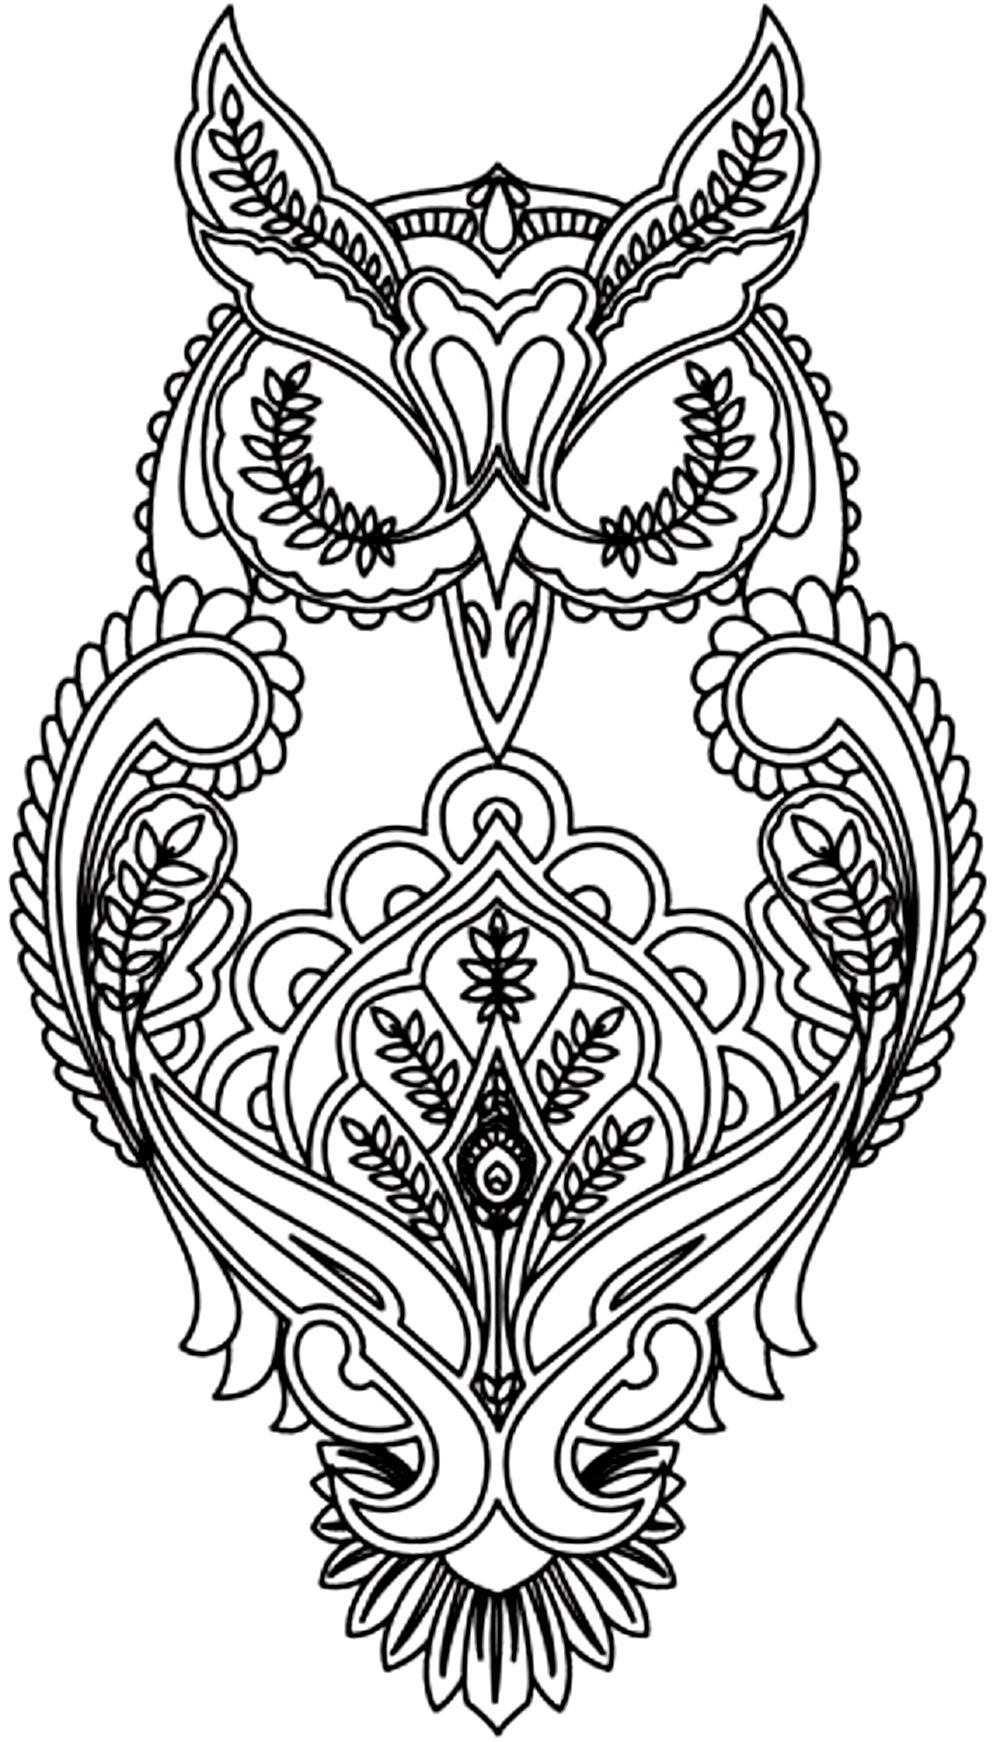 Free coloring pages for adults - Free Coloring Page Coloring Adult Difficult Owl